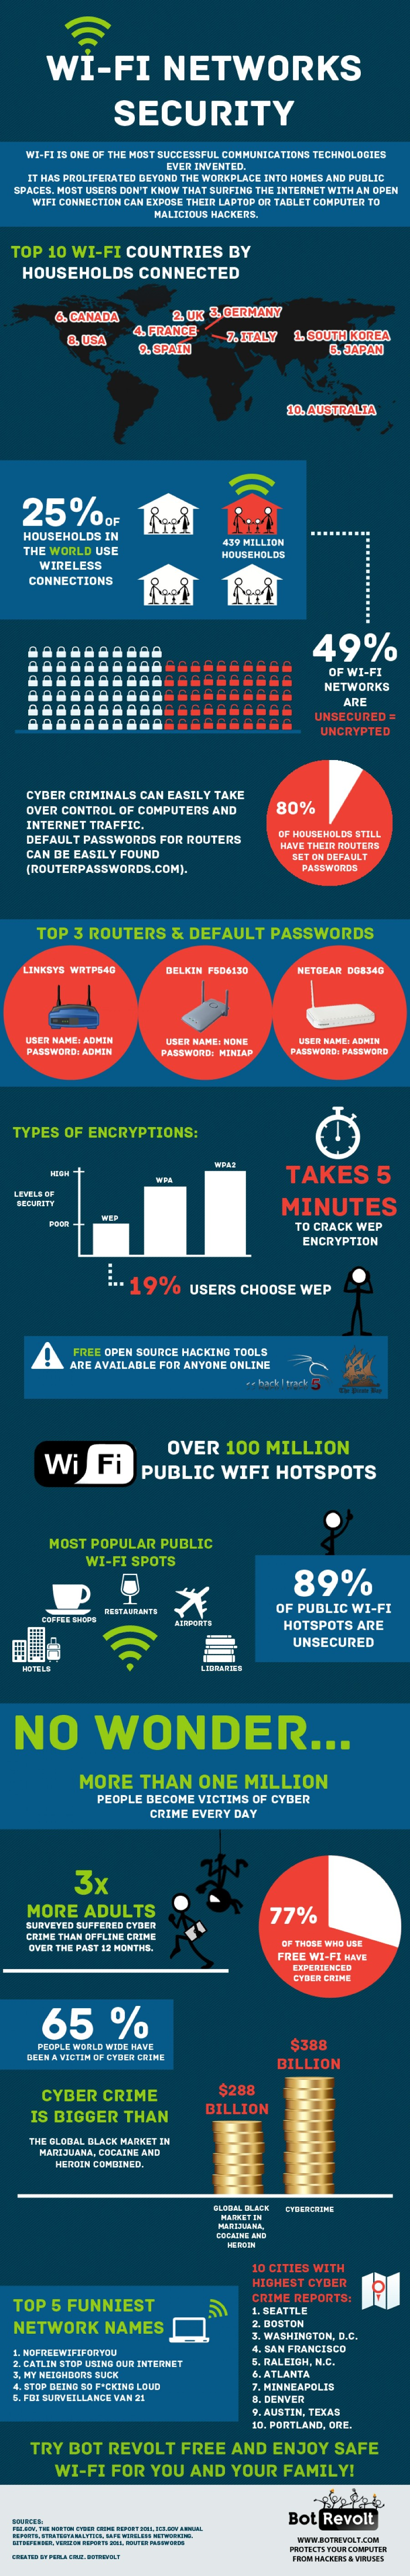 Wi-Fi networks security